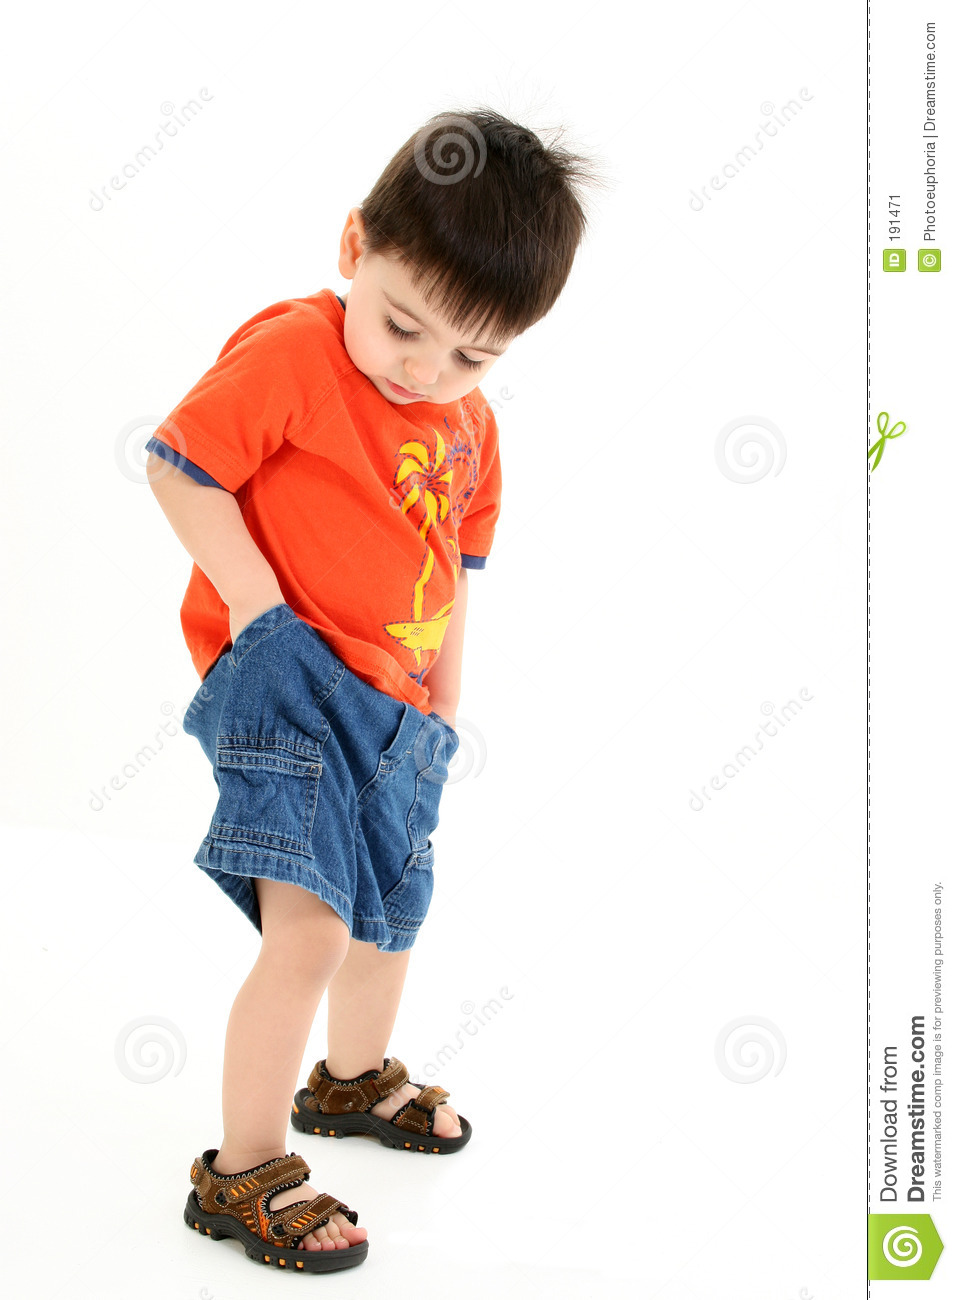 Preteen Boys Images Stock Pictures - 123RF Stock Photos